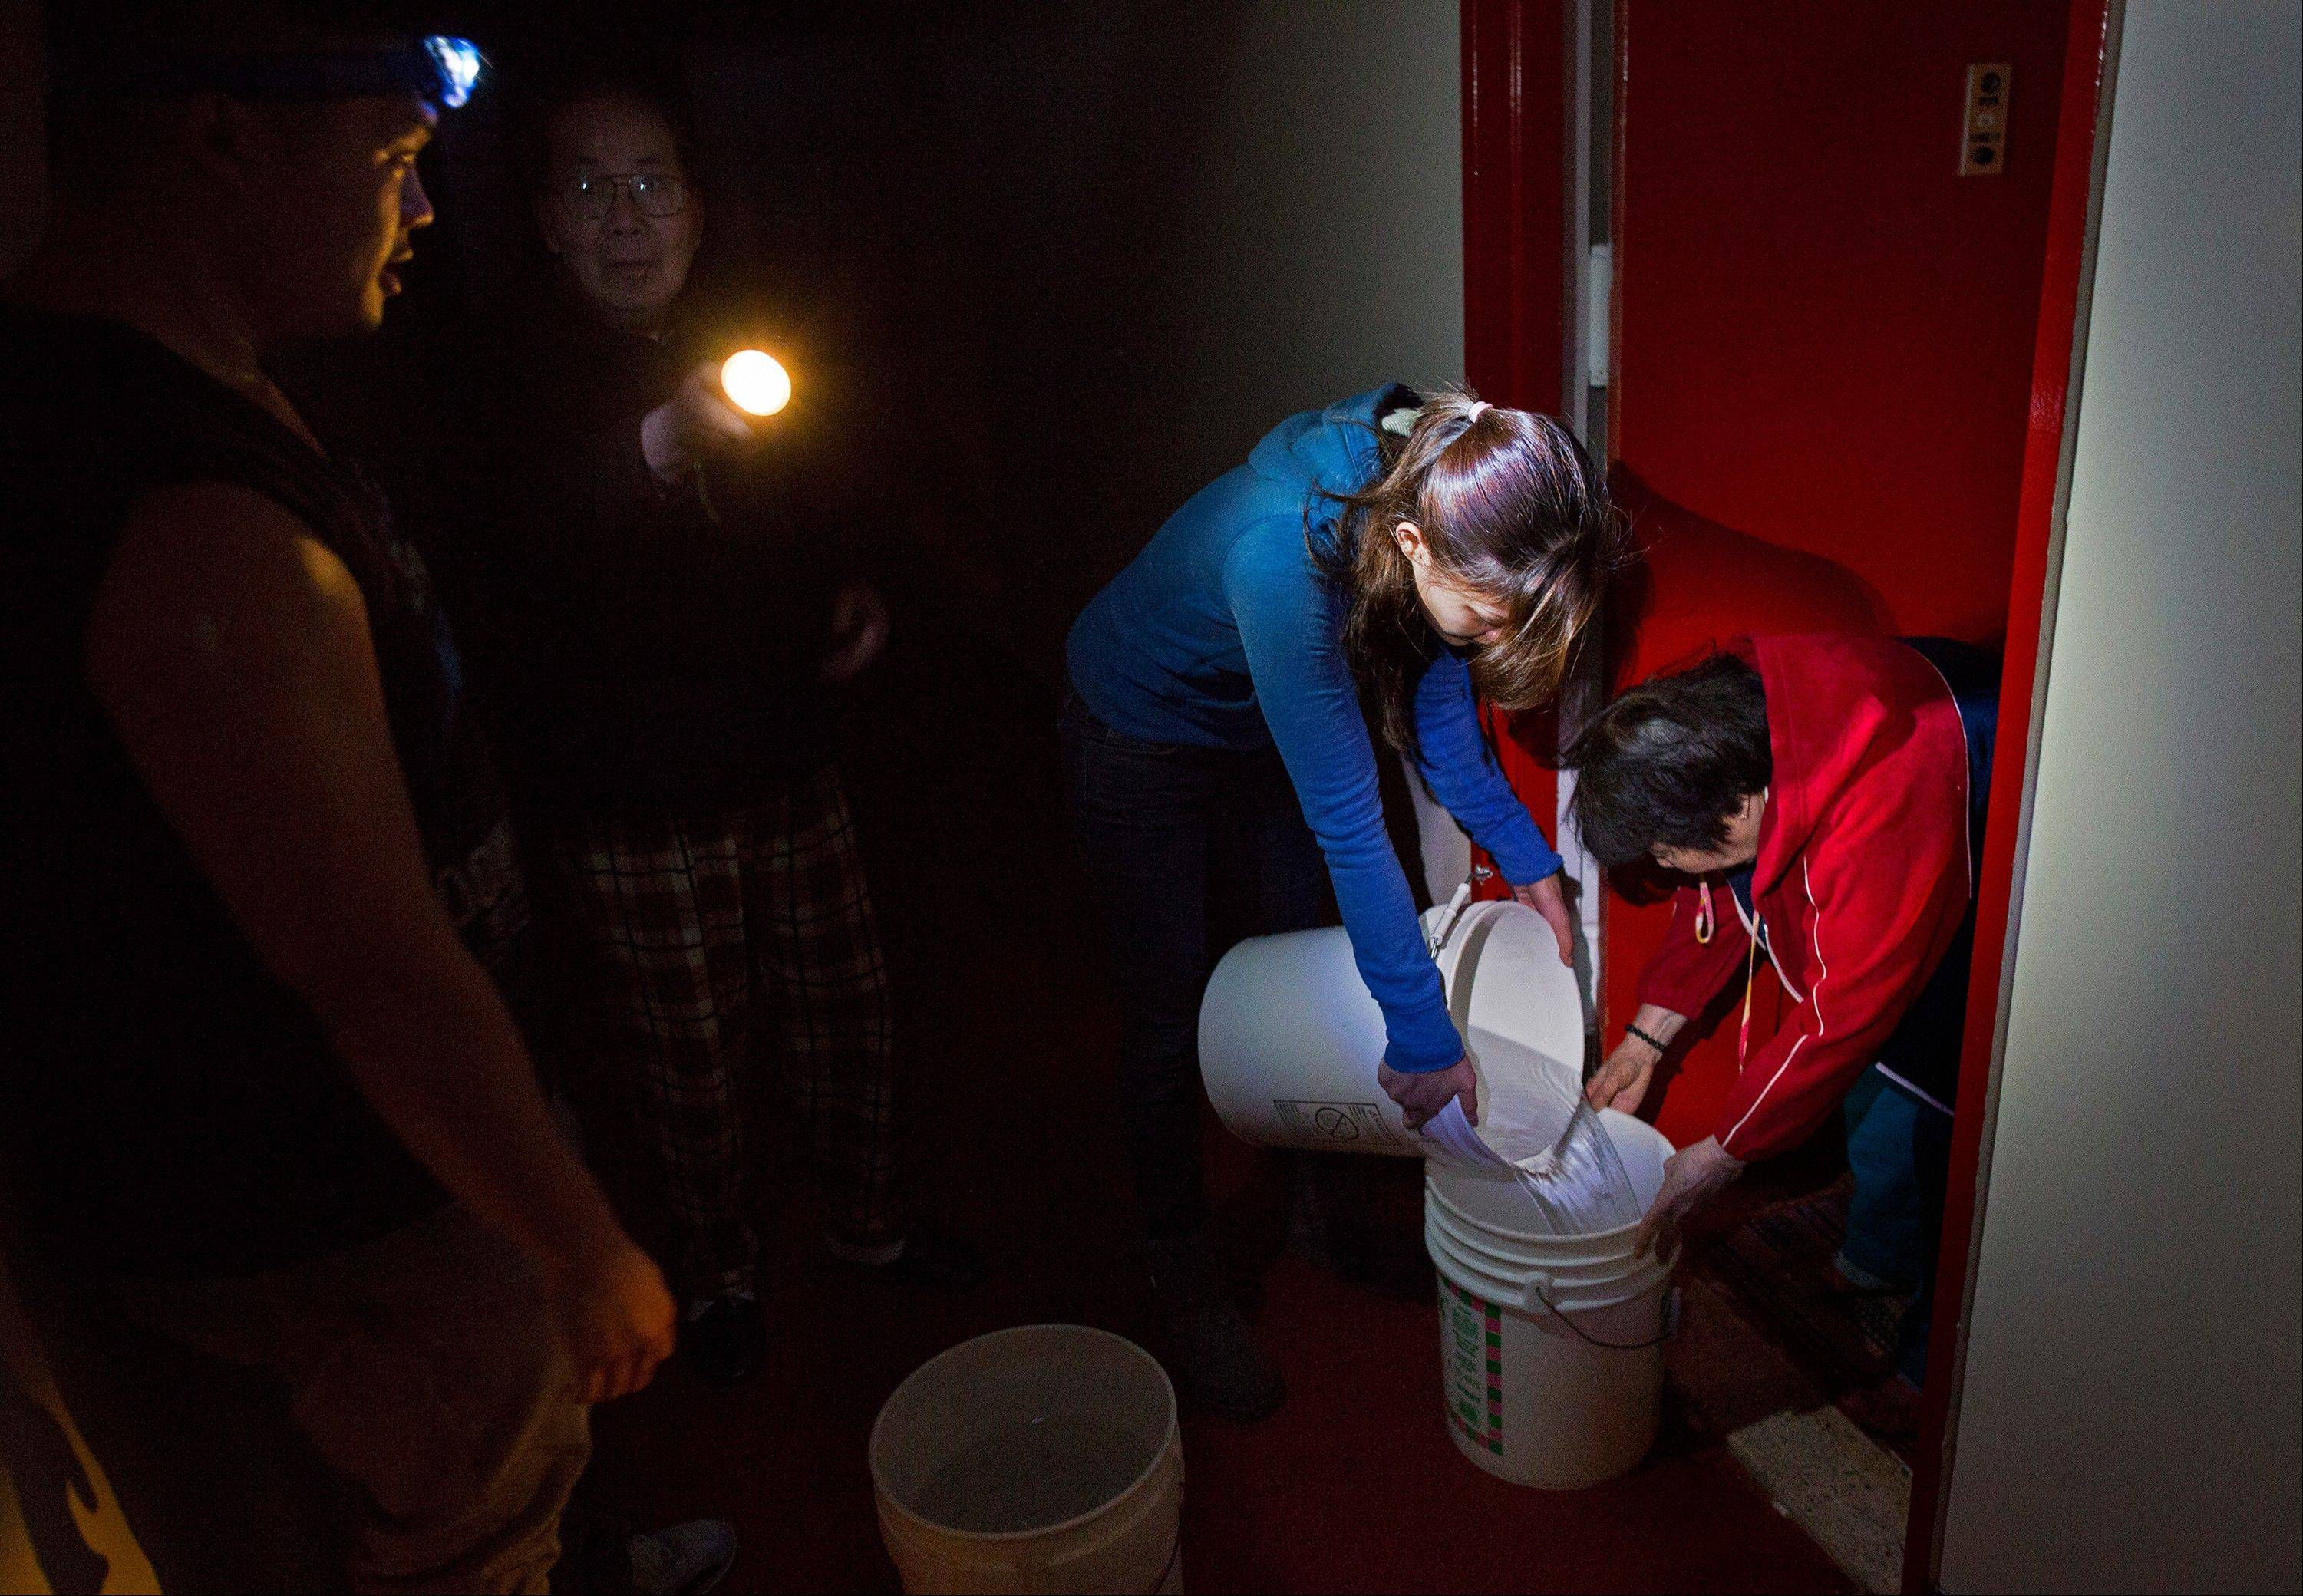 Grace Chow, 22, of New York, pours water from one bucket to another for a resident on the twentieth floor at Confucius Plaza in the Chinatown neighborhood of New York, Thursday, Nov. 1, 2012. In the wake of Superstorm Sandy, power outages have also meant loss of water for some buildings. Chow and Matthew Hom, 26, also of New York, are volunteering for the New York United Dragon and Lion Dance group.